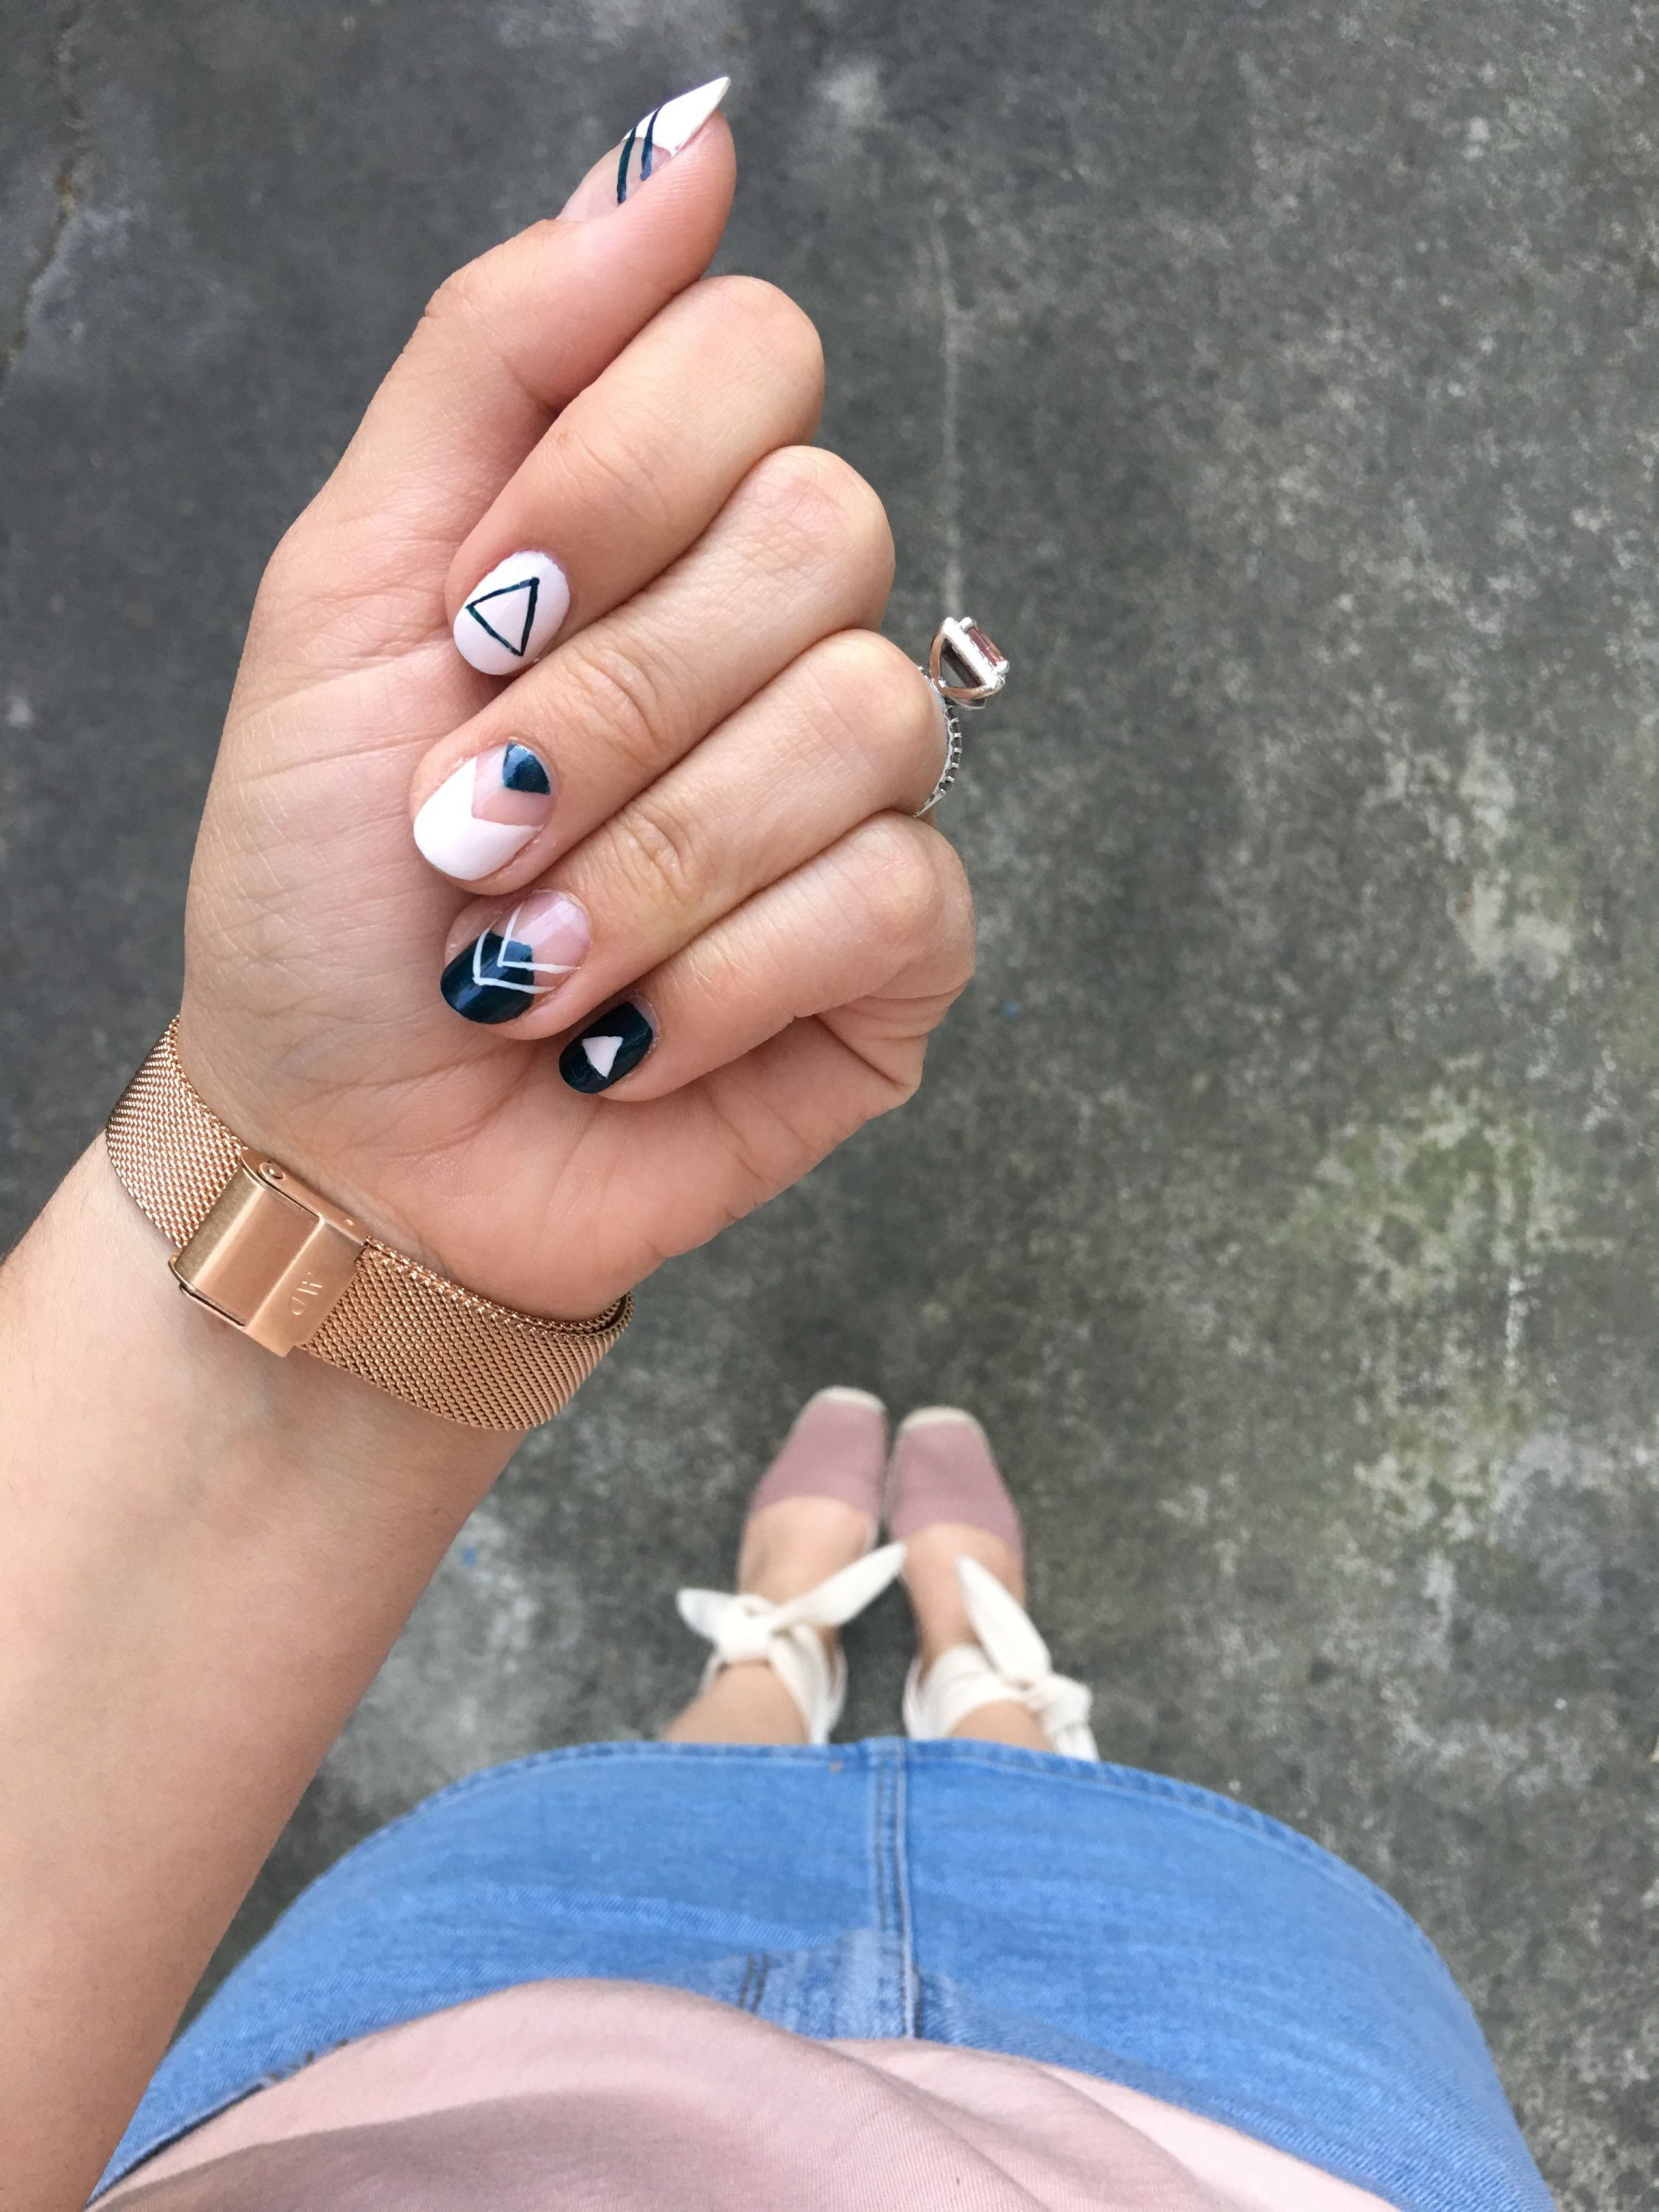 Triangle Nail Art 500 Amazon Gift Card Giveaway Nails